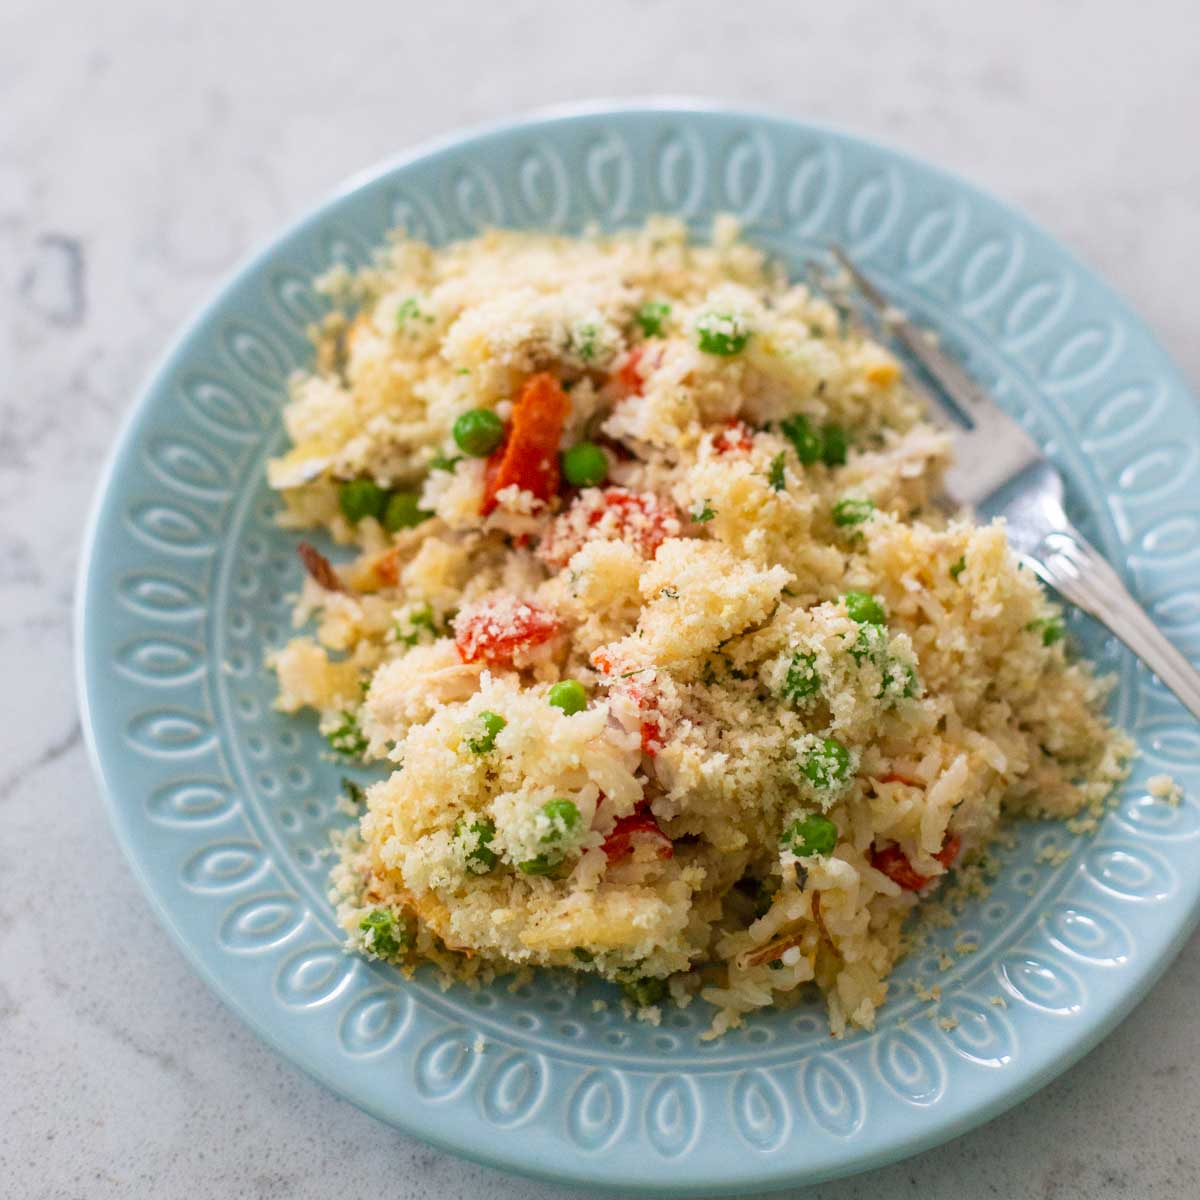 A blue plate has a serving of chicken rice alfredo casserole. You can see the red peppers and peas popping up through out the serving.